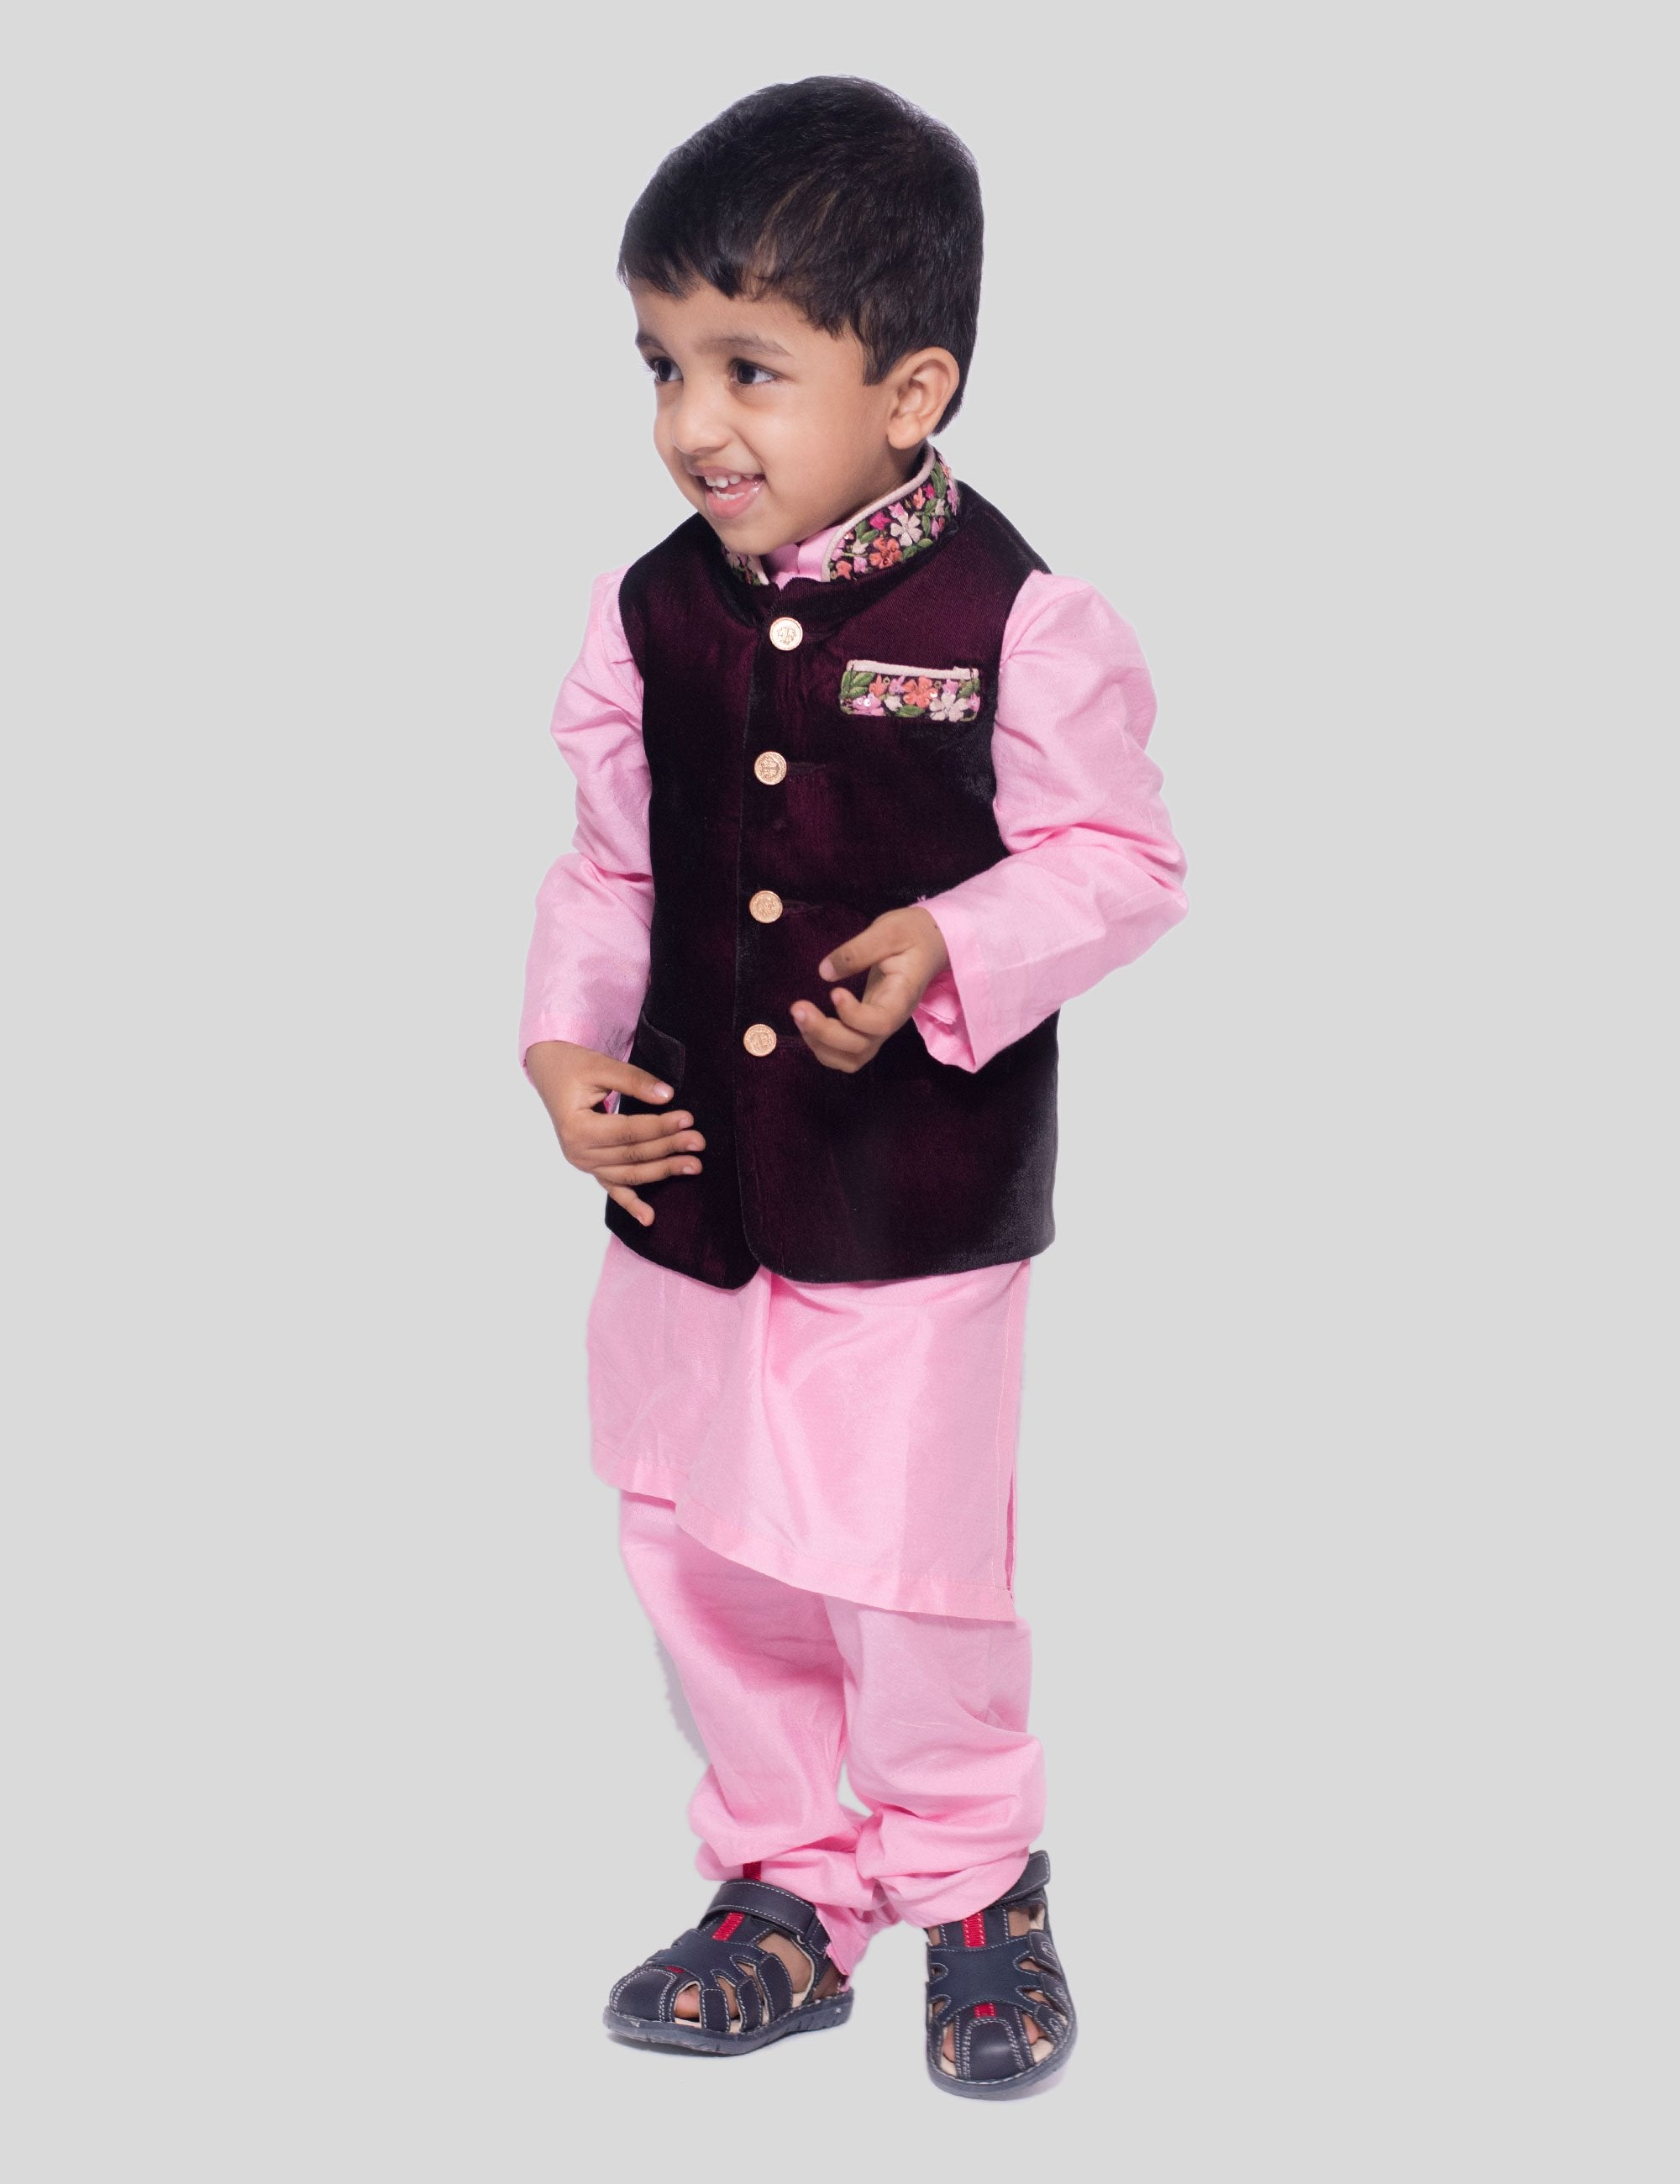 Embroidered Velvet Nehru Jacket with Churidaar In Pink for Boys